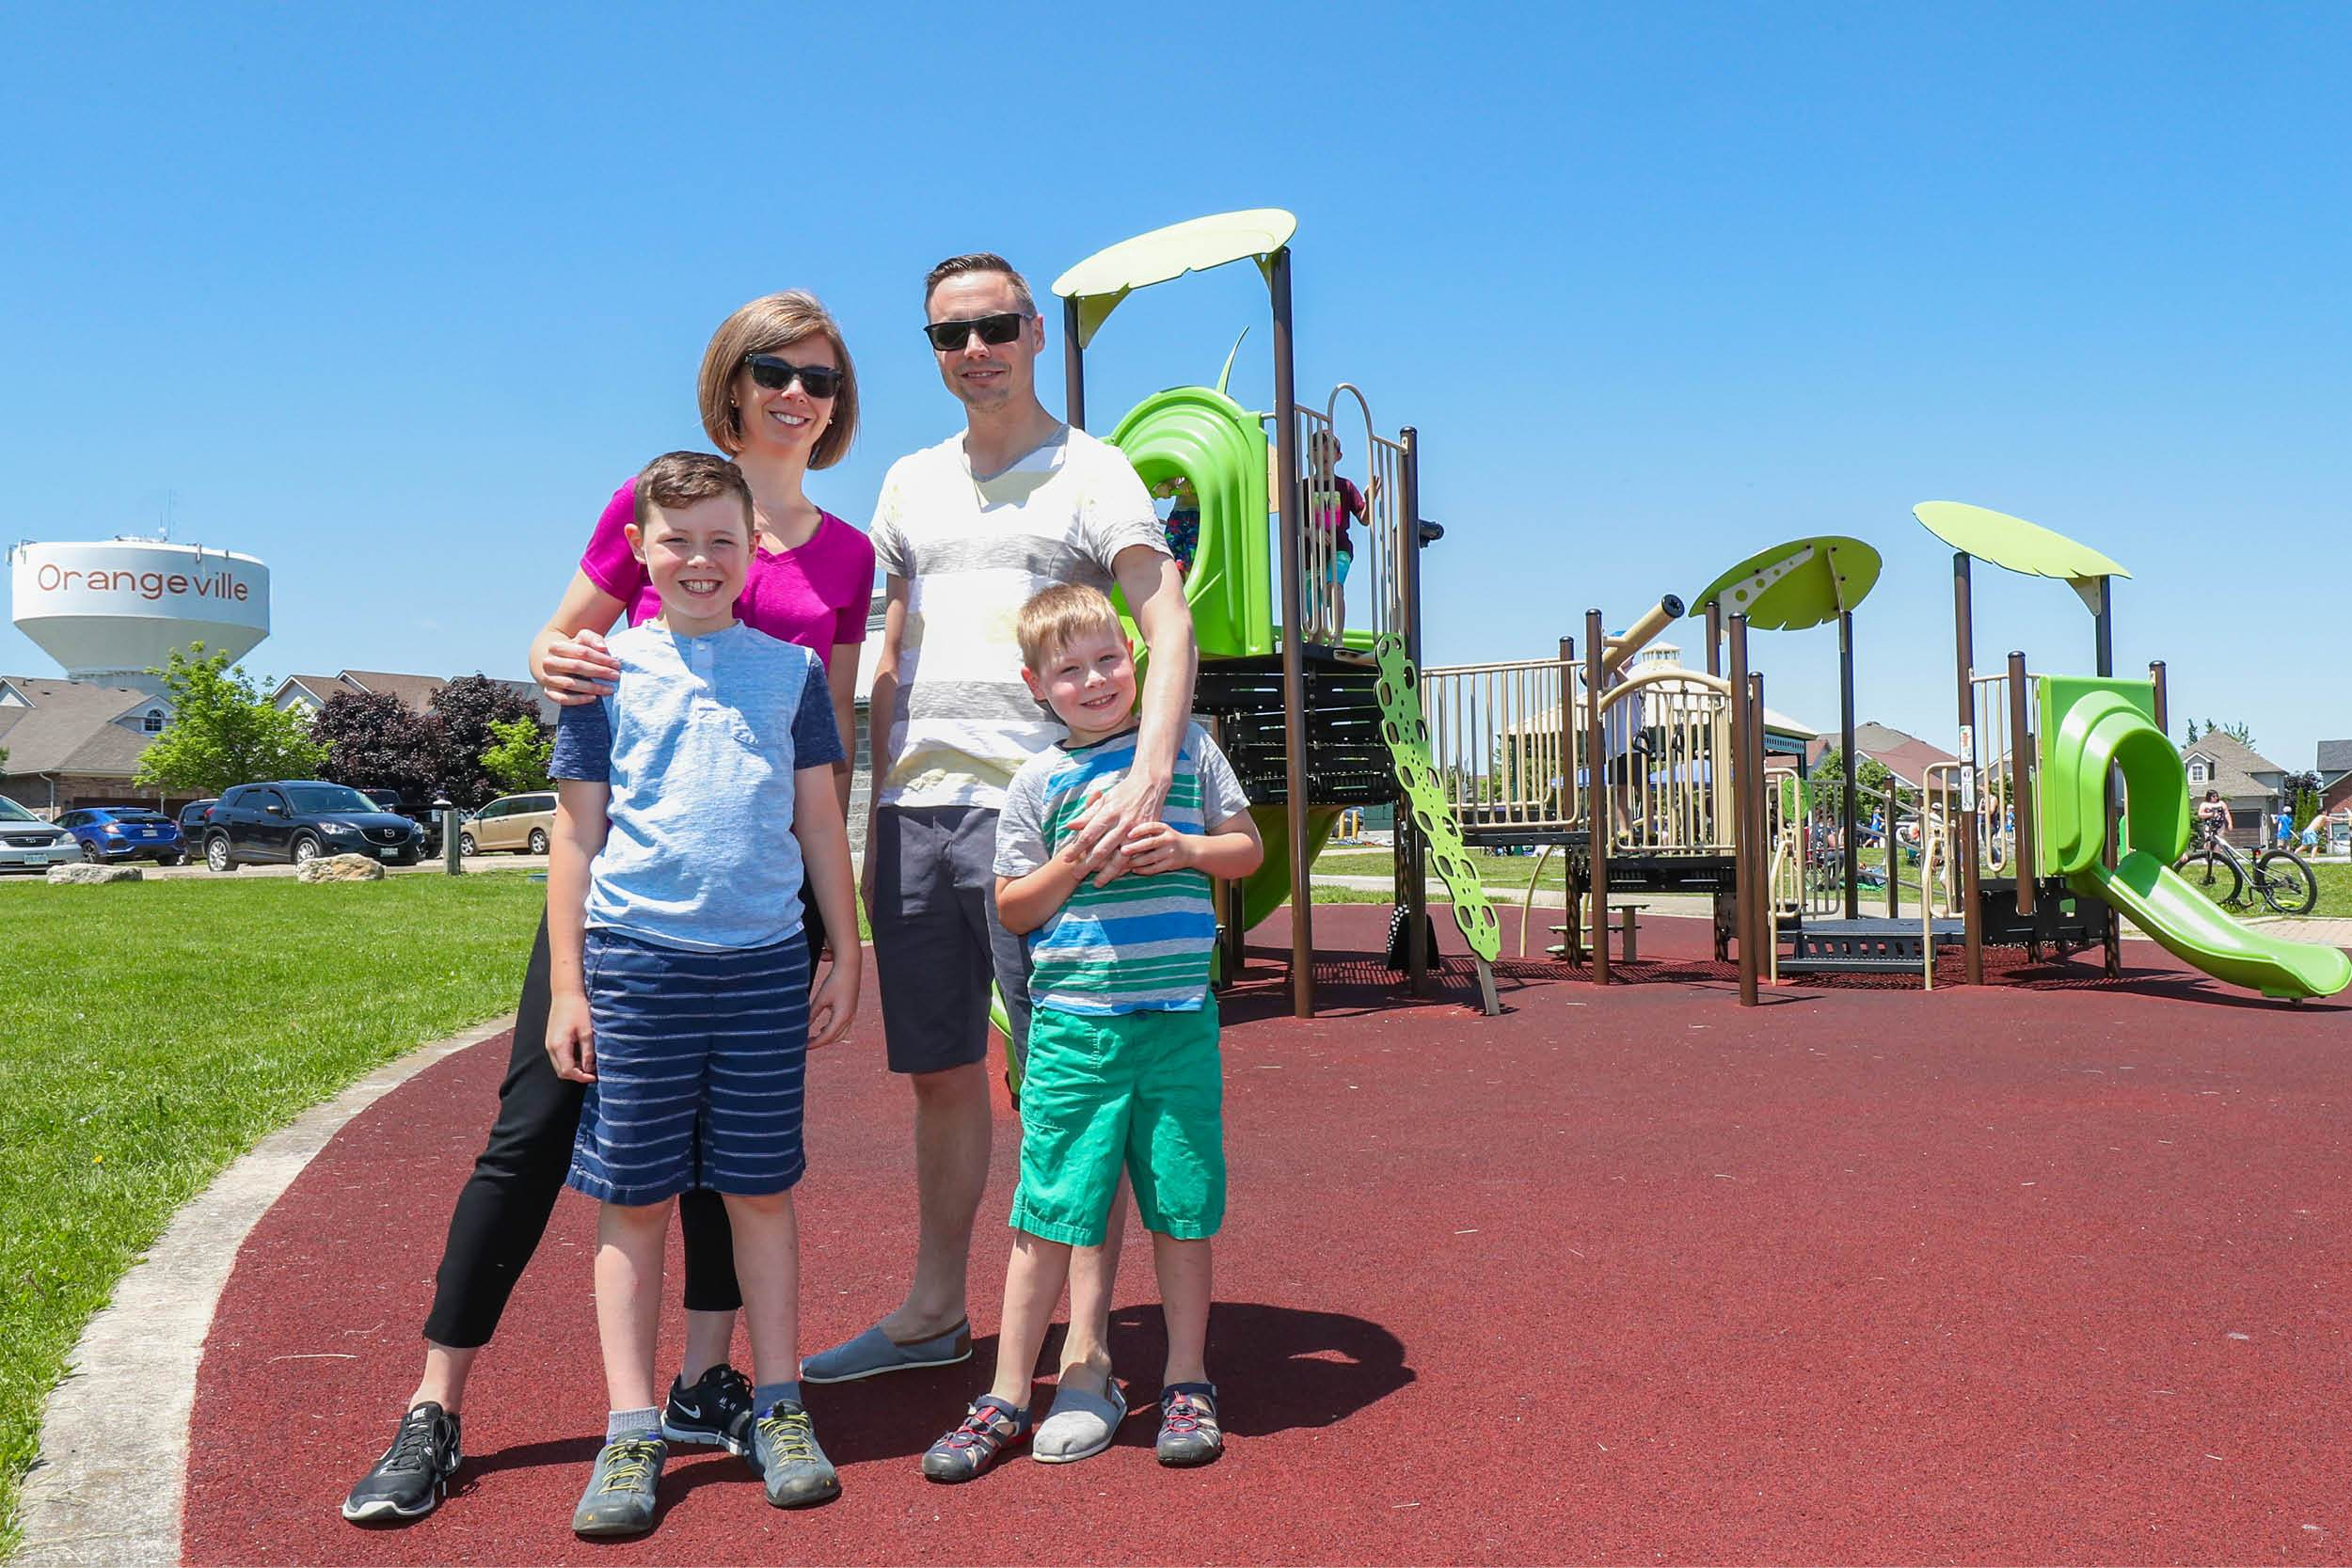 Family of four standing in playground